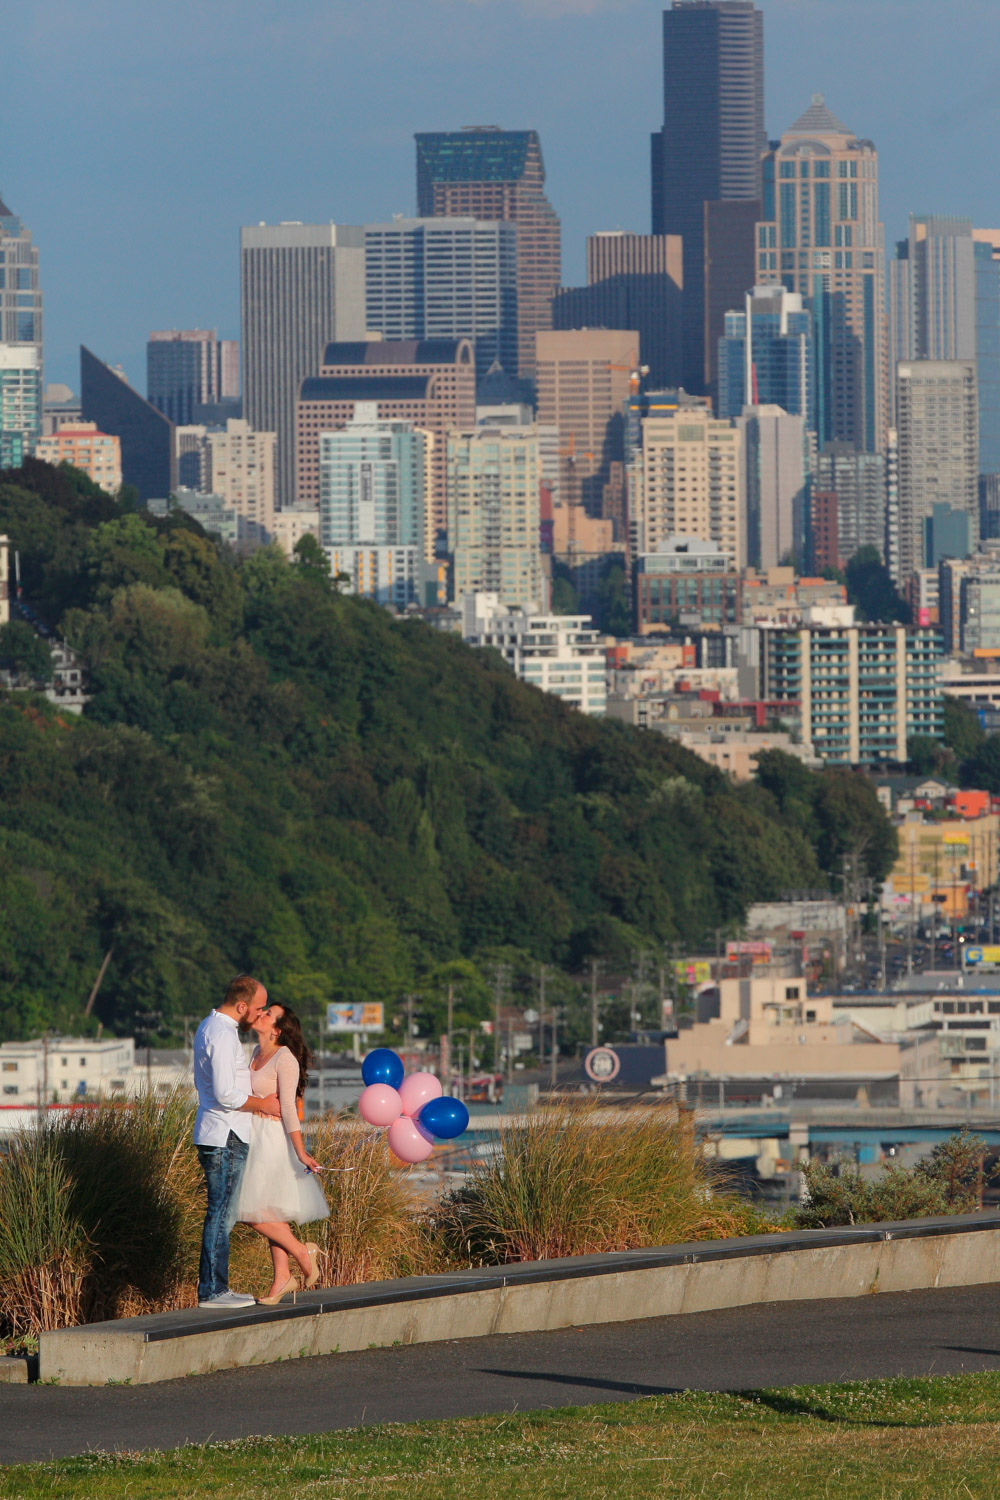 Engagement+Photos+Pike+Market+and+Sculpture+Park+Seattle+Washington13.jpg